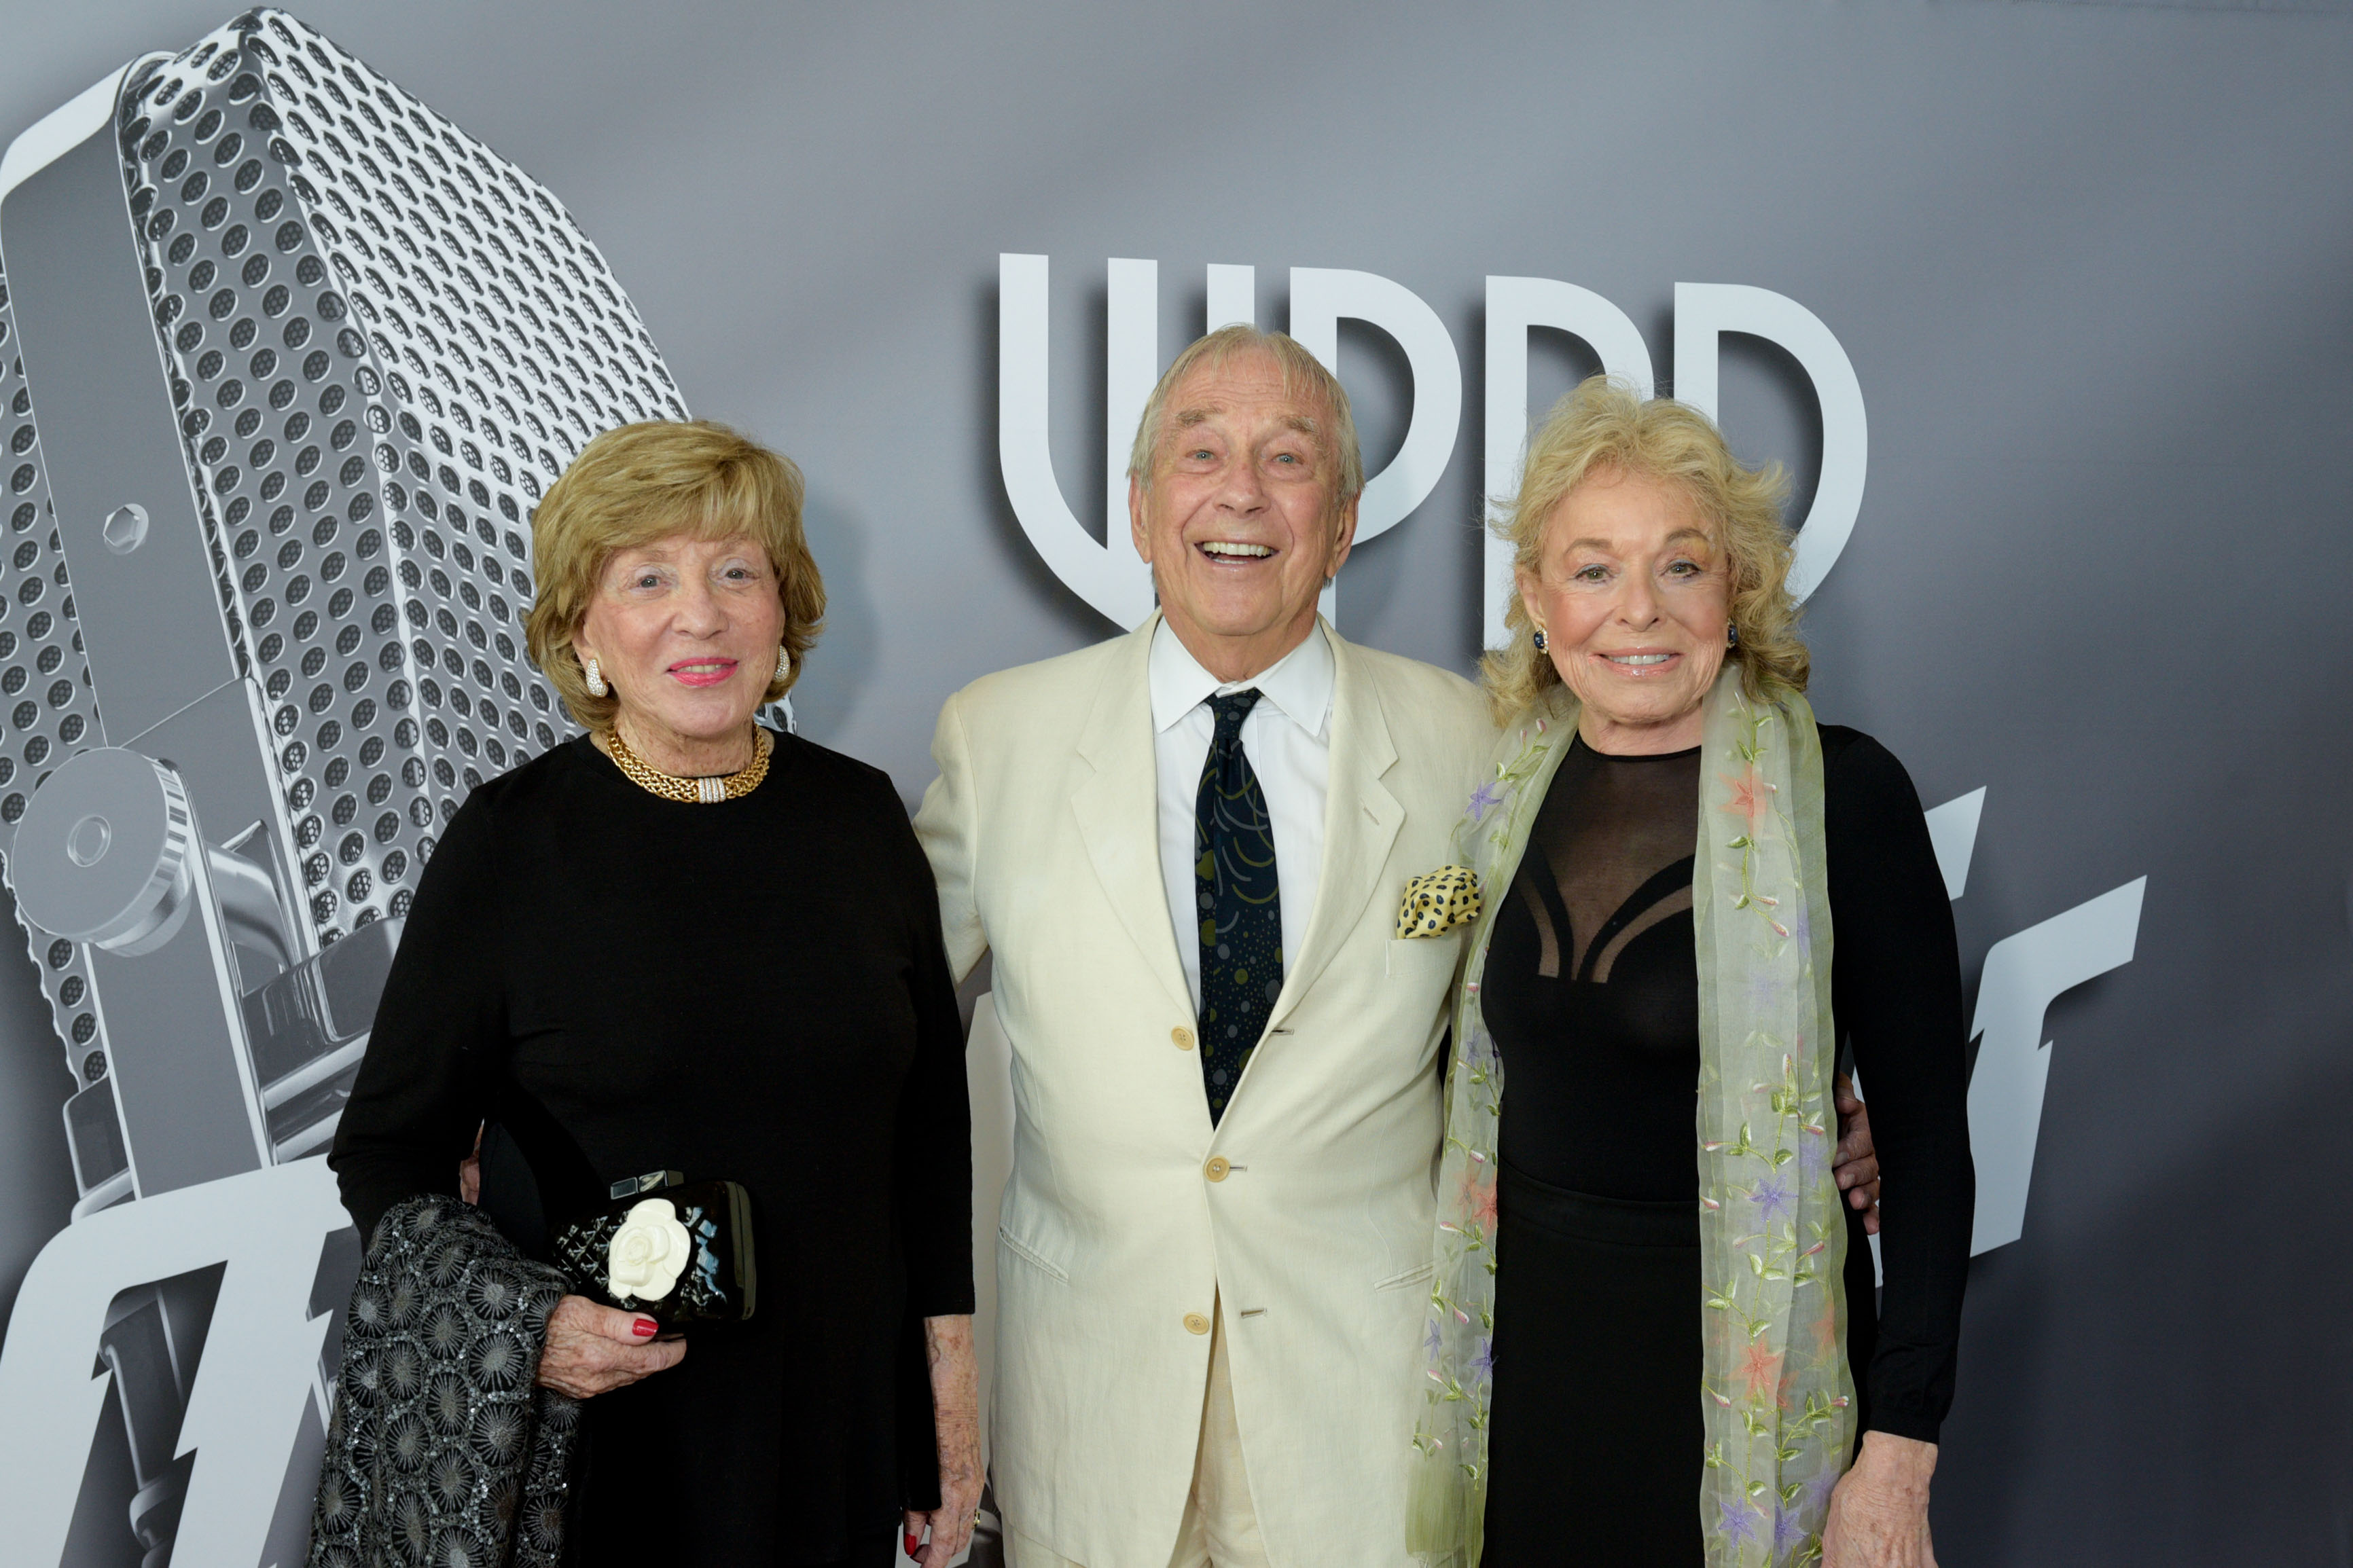 Marilyn Meyerhoff, Sam Feldman, and Shirley Duhl